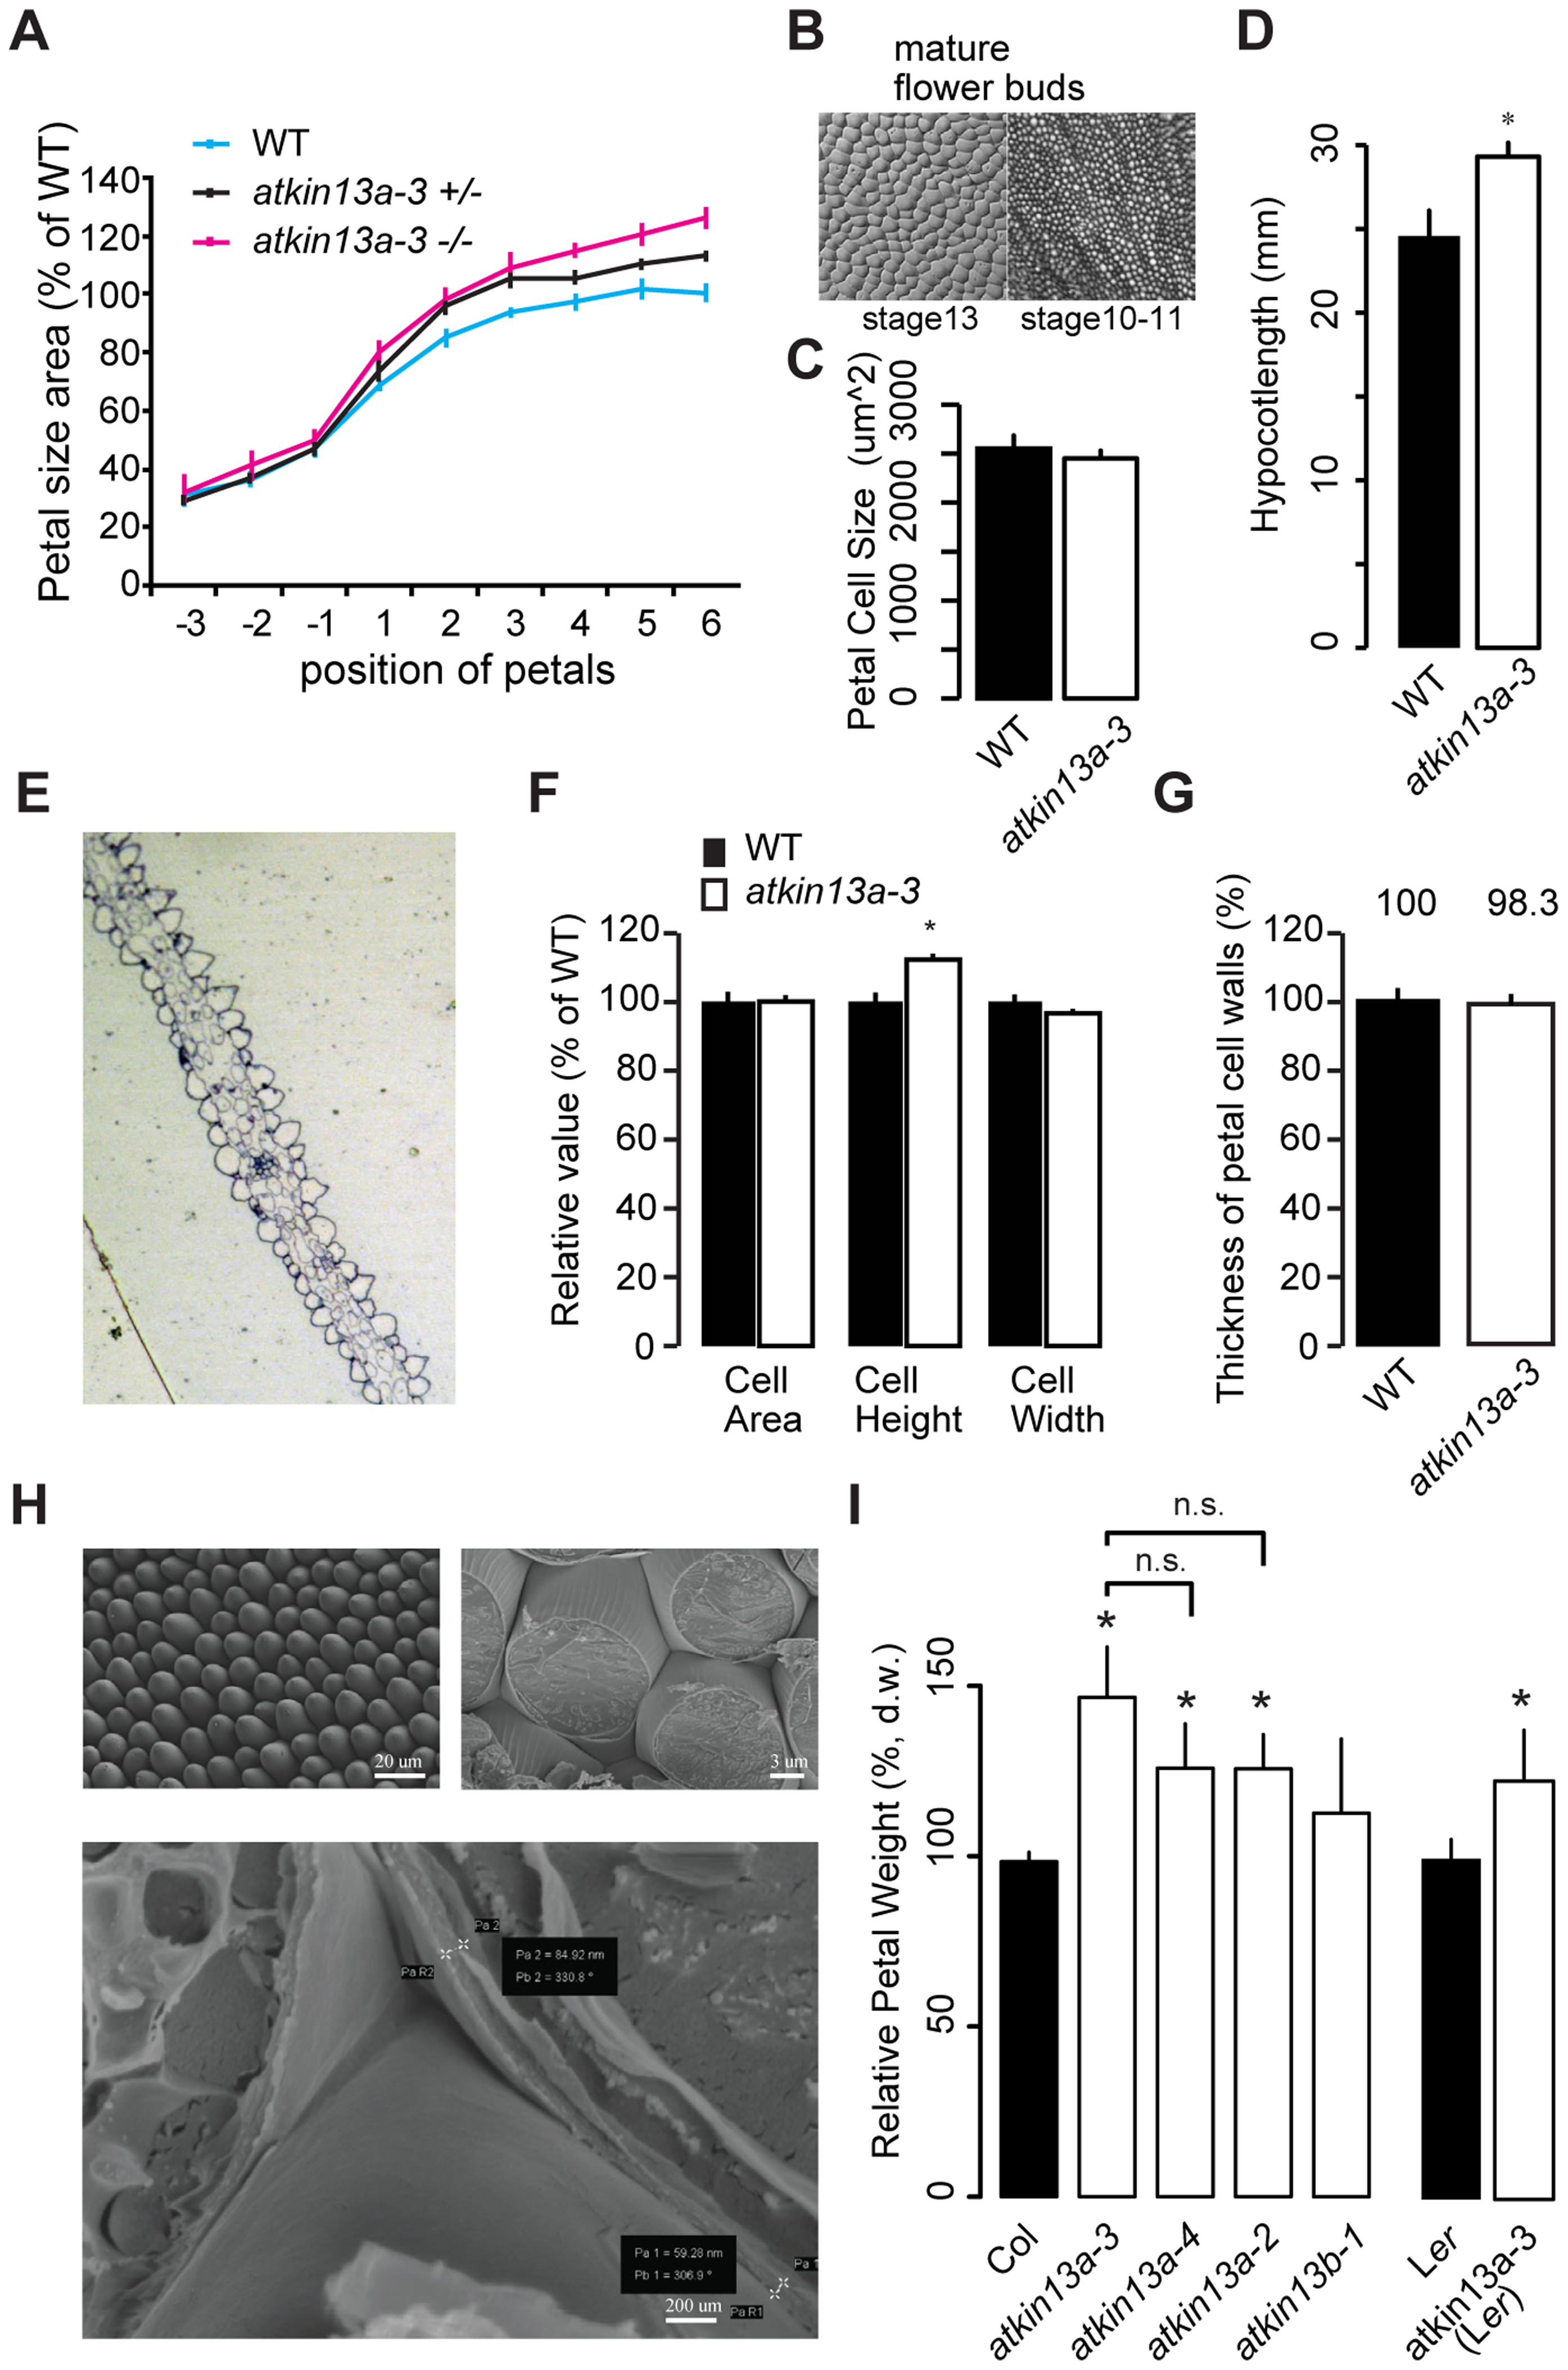 Increased postmitotic cell expansion in <i>atkin13a</i> mutants.